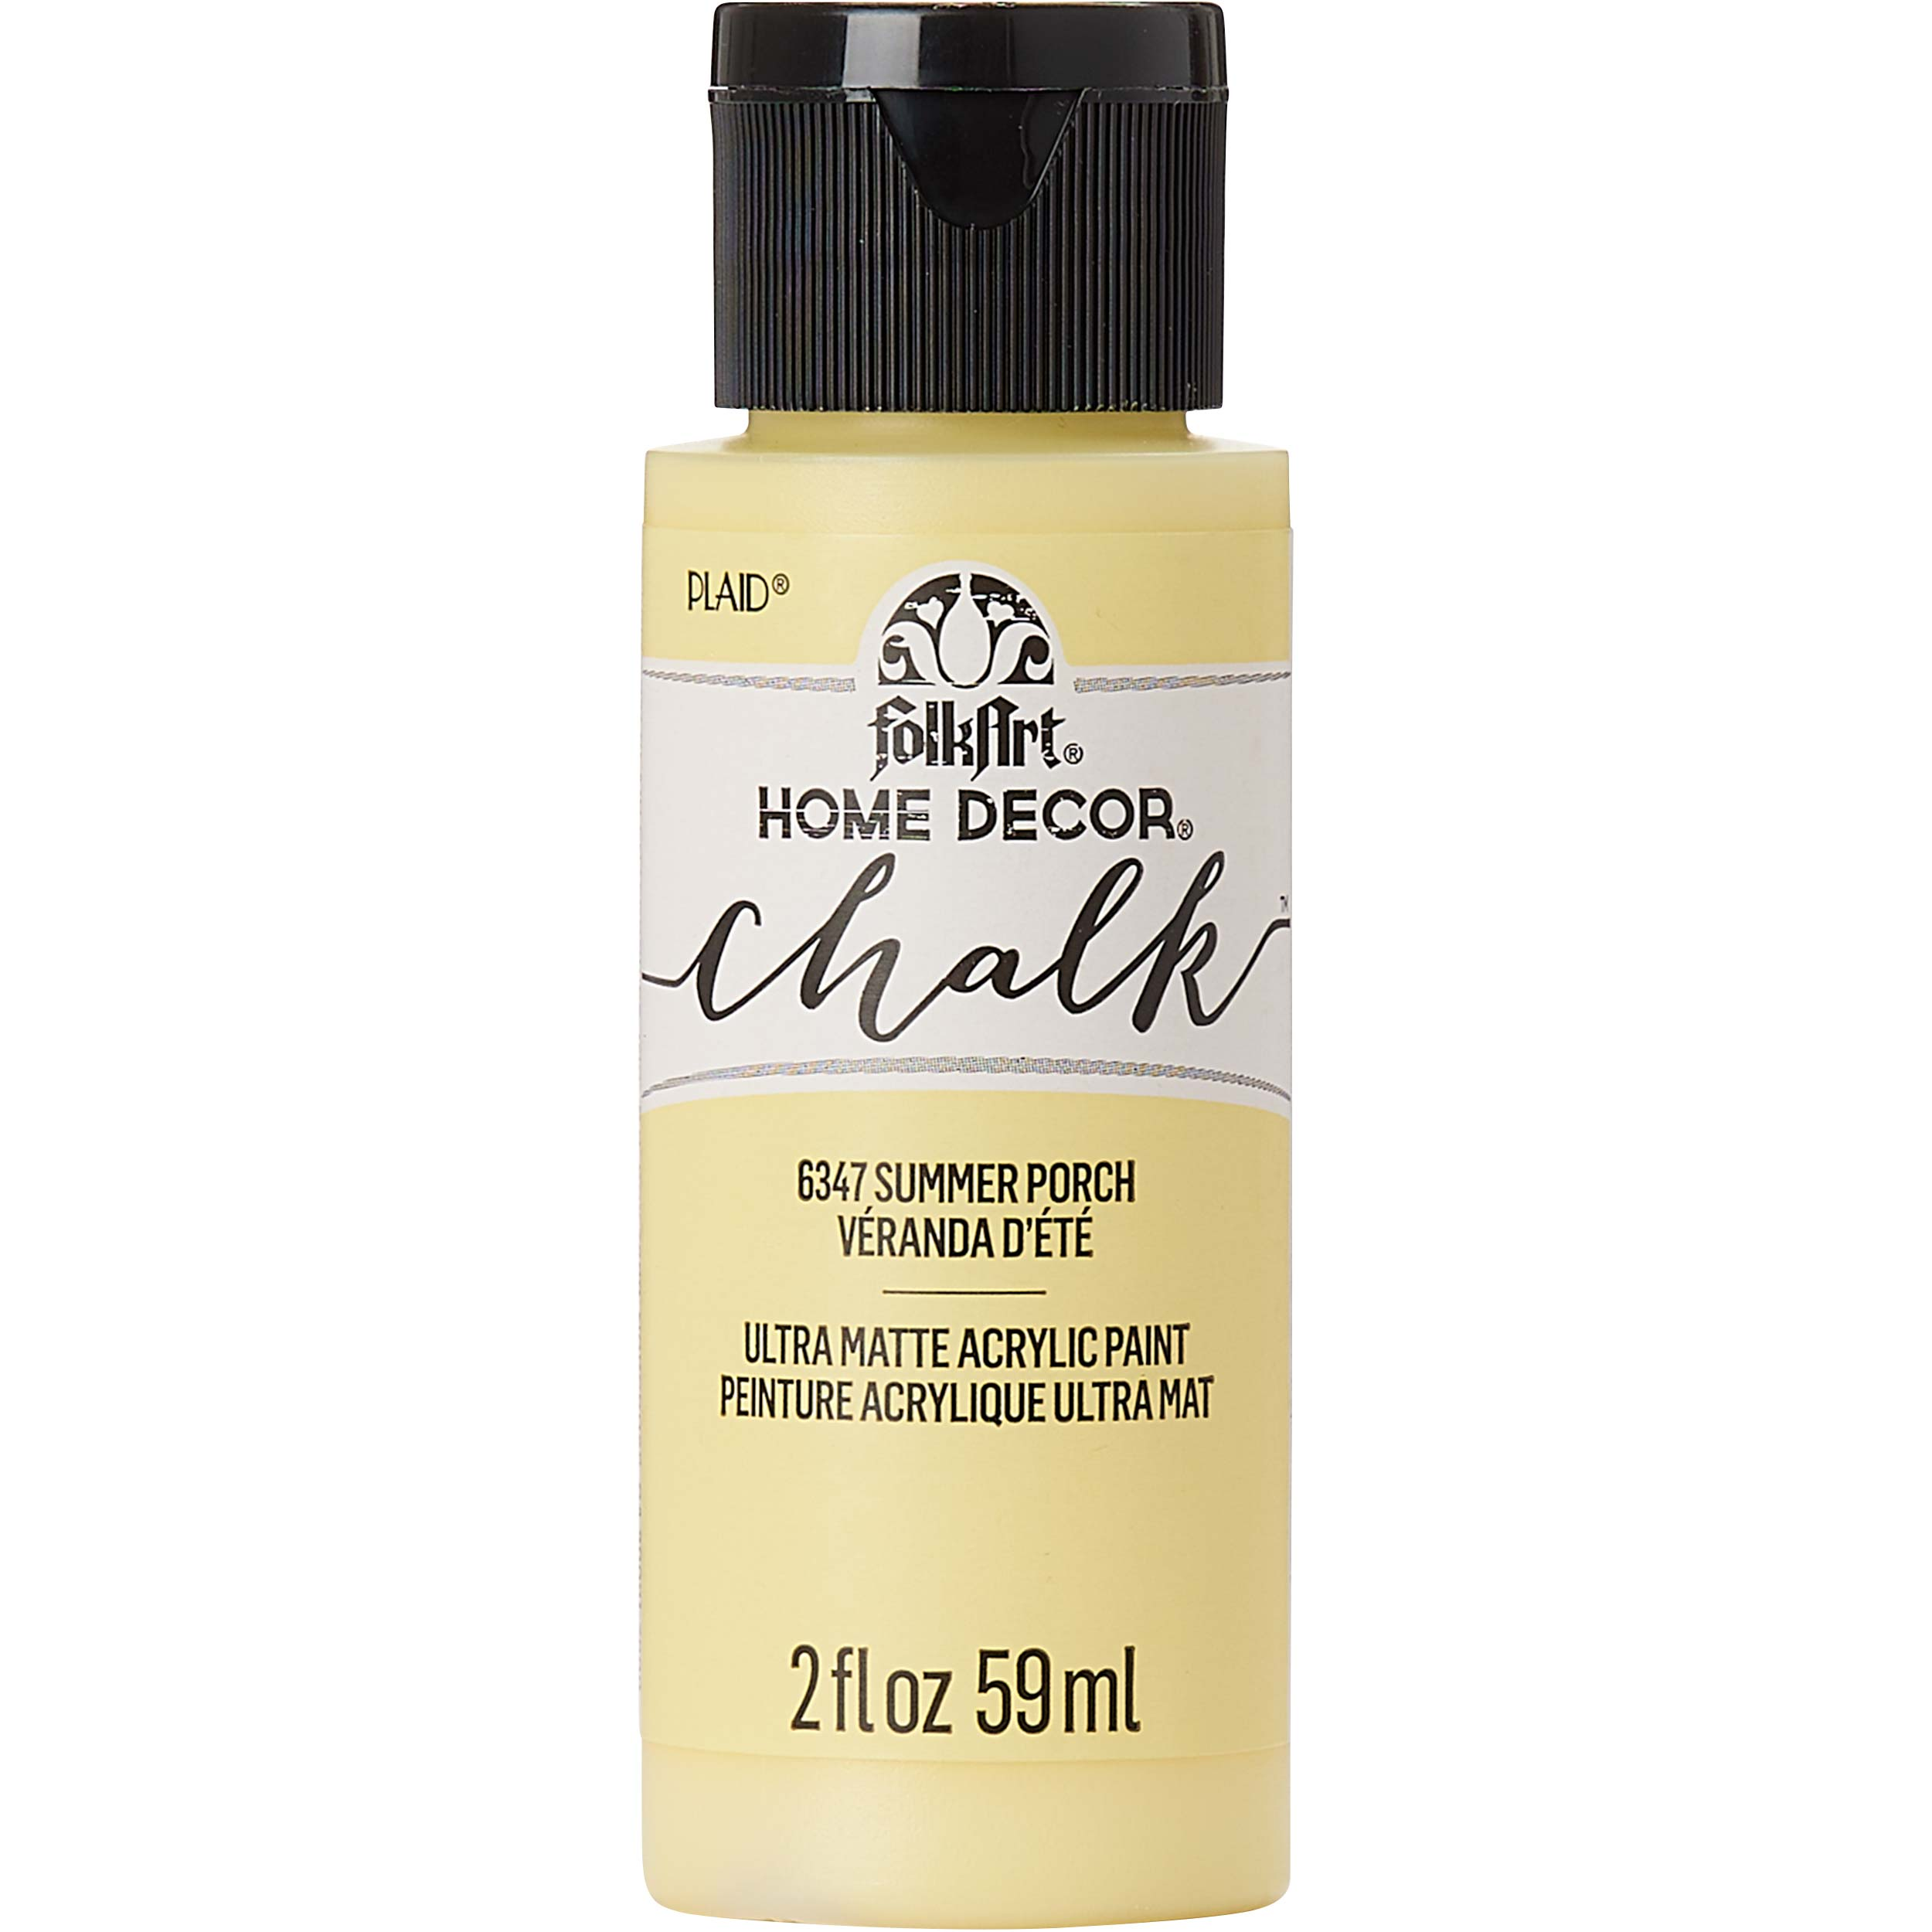 FolkArt ® Home Decor™ Chalk - Summer Porch, 2 oz. - 6347